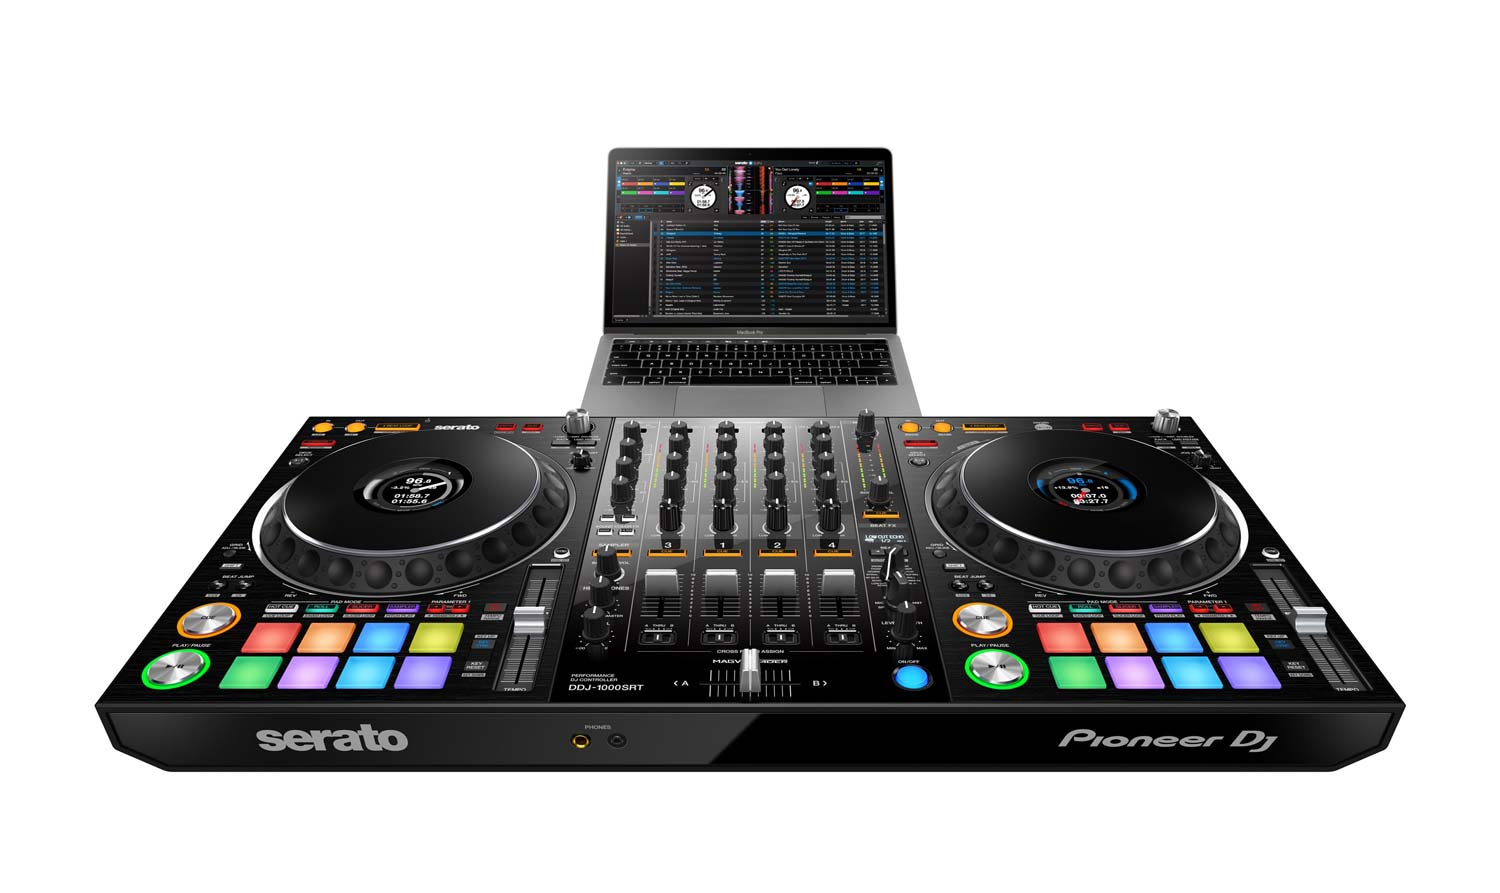 laptop not included - Pioneer DDJ-1000SRT Serato Controller 4ch